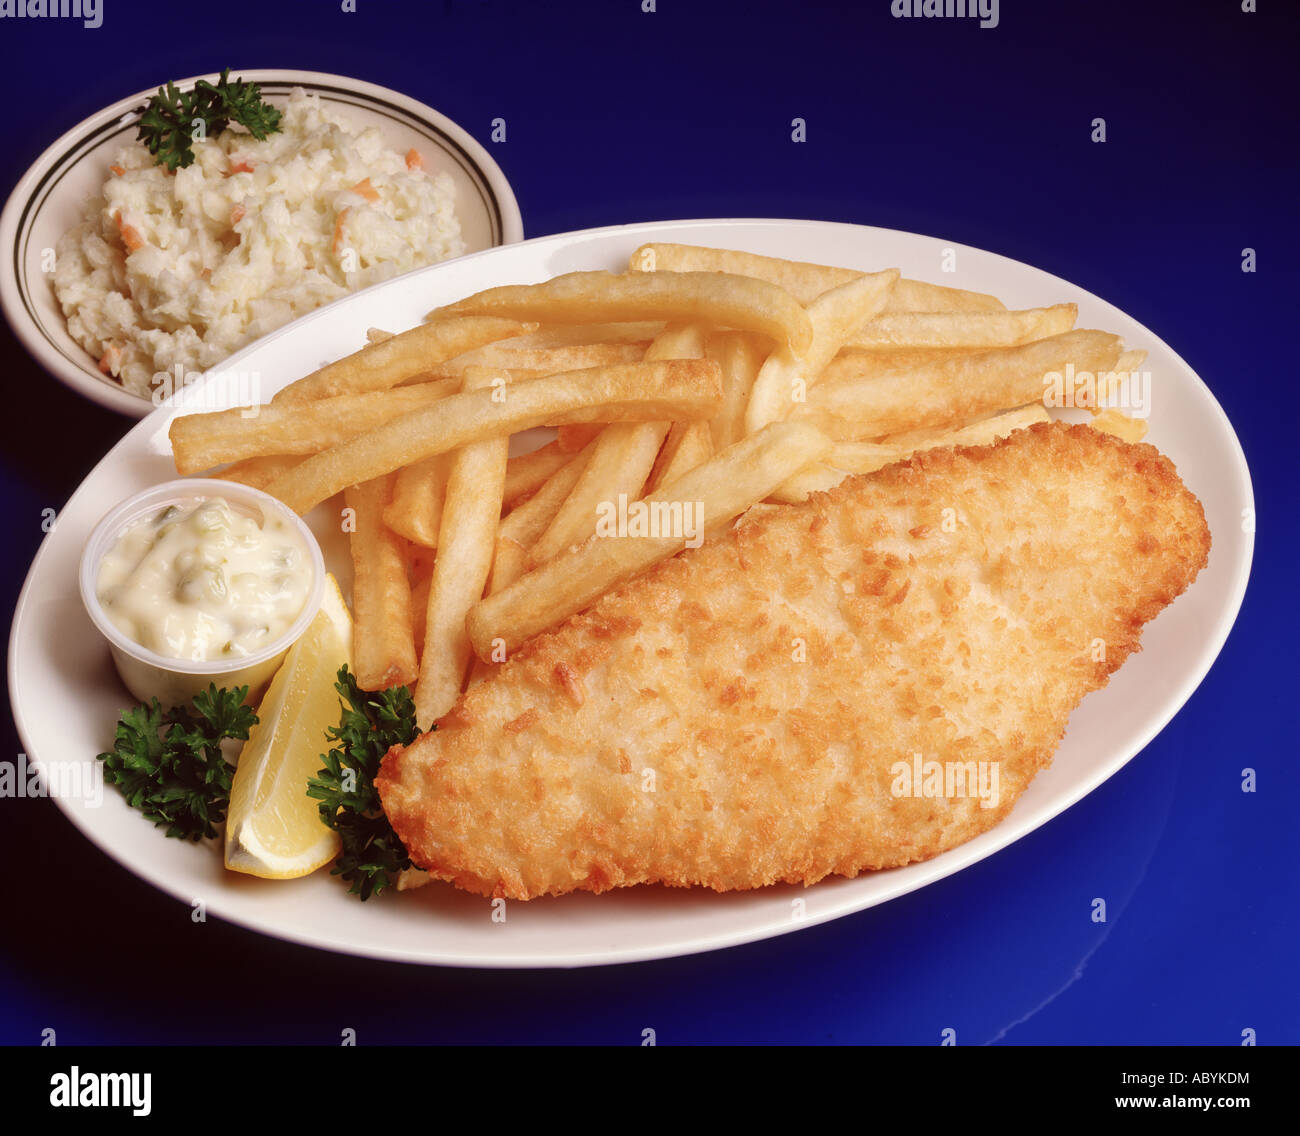 Fried fish fillet dinner chips french fry fries tartar for Fried fish dinner